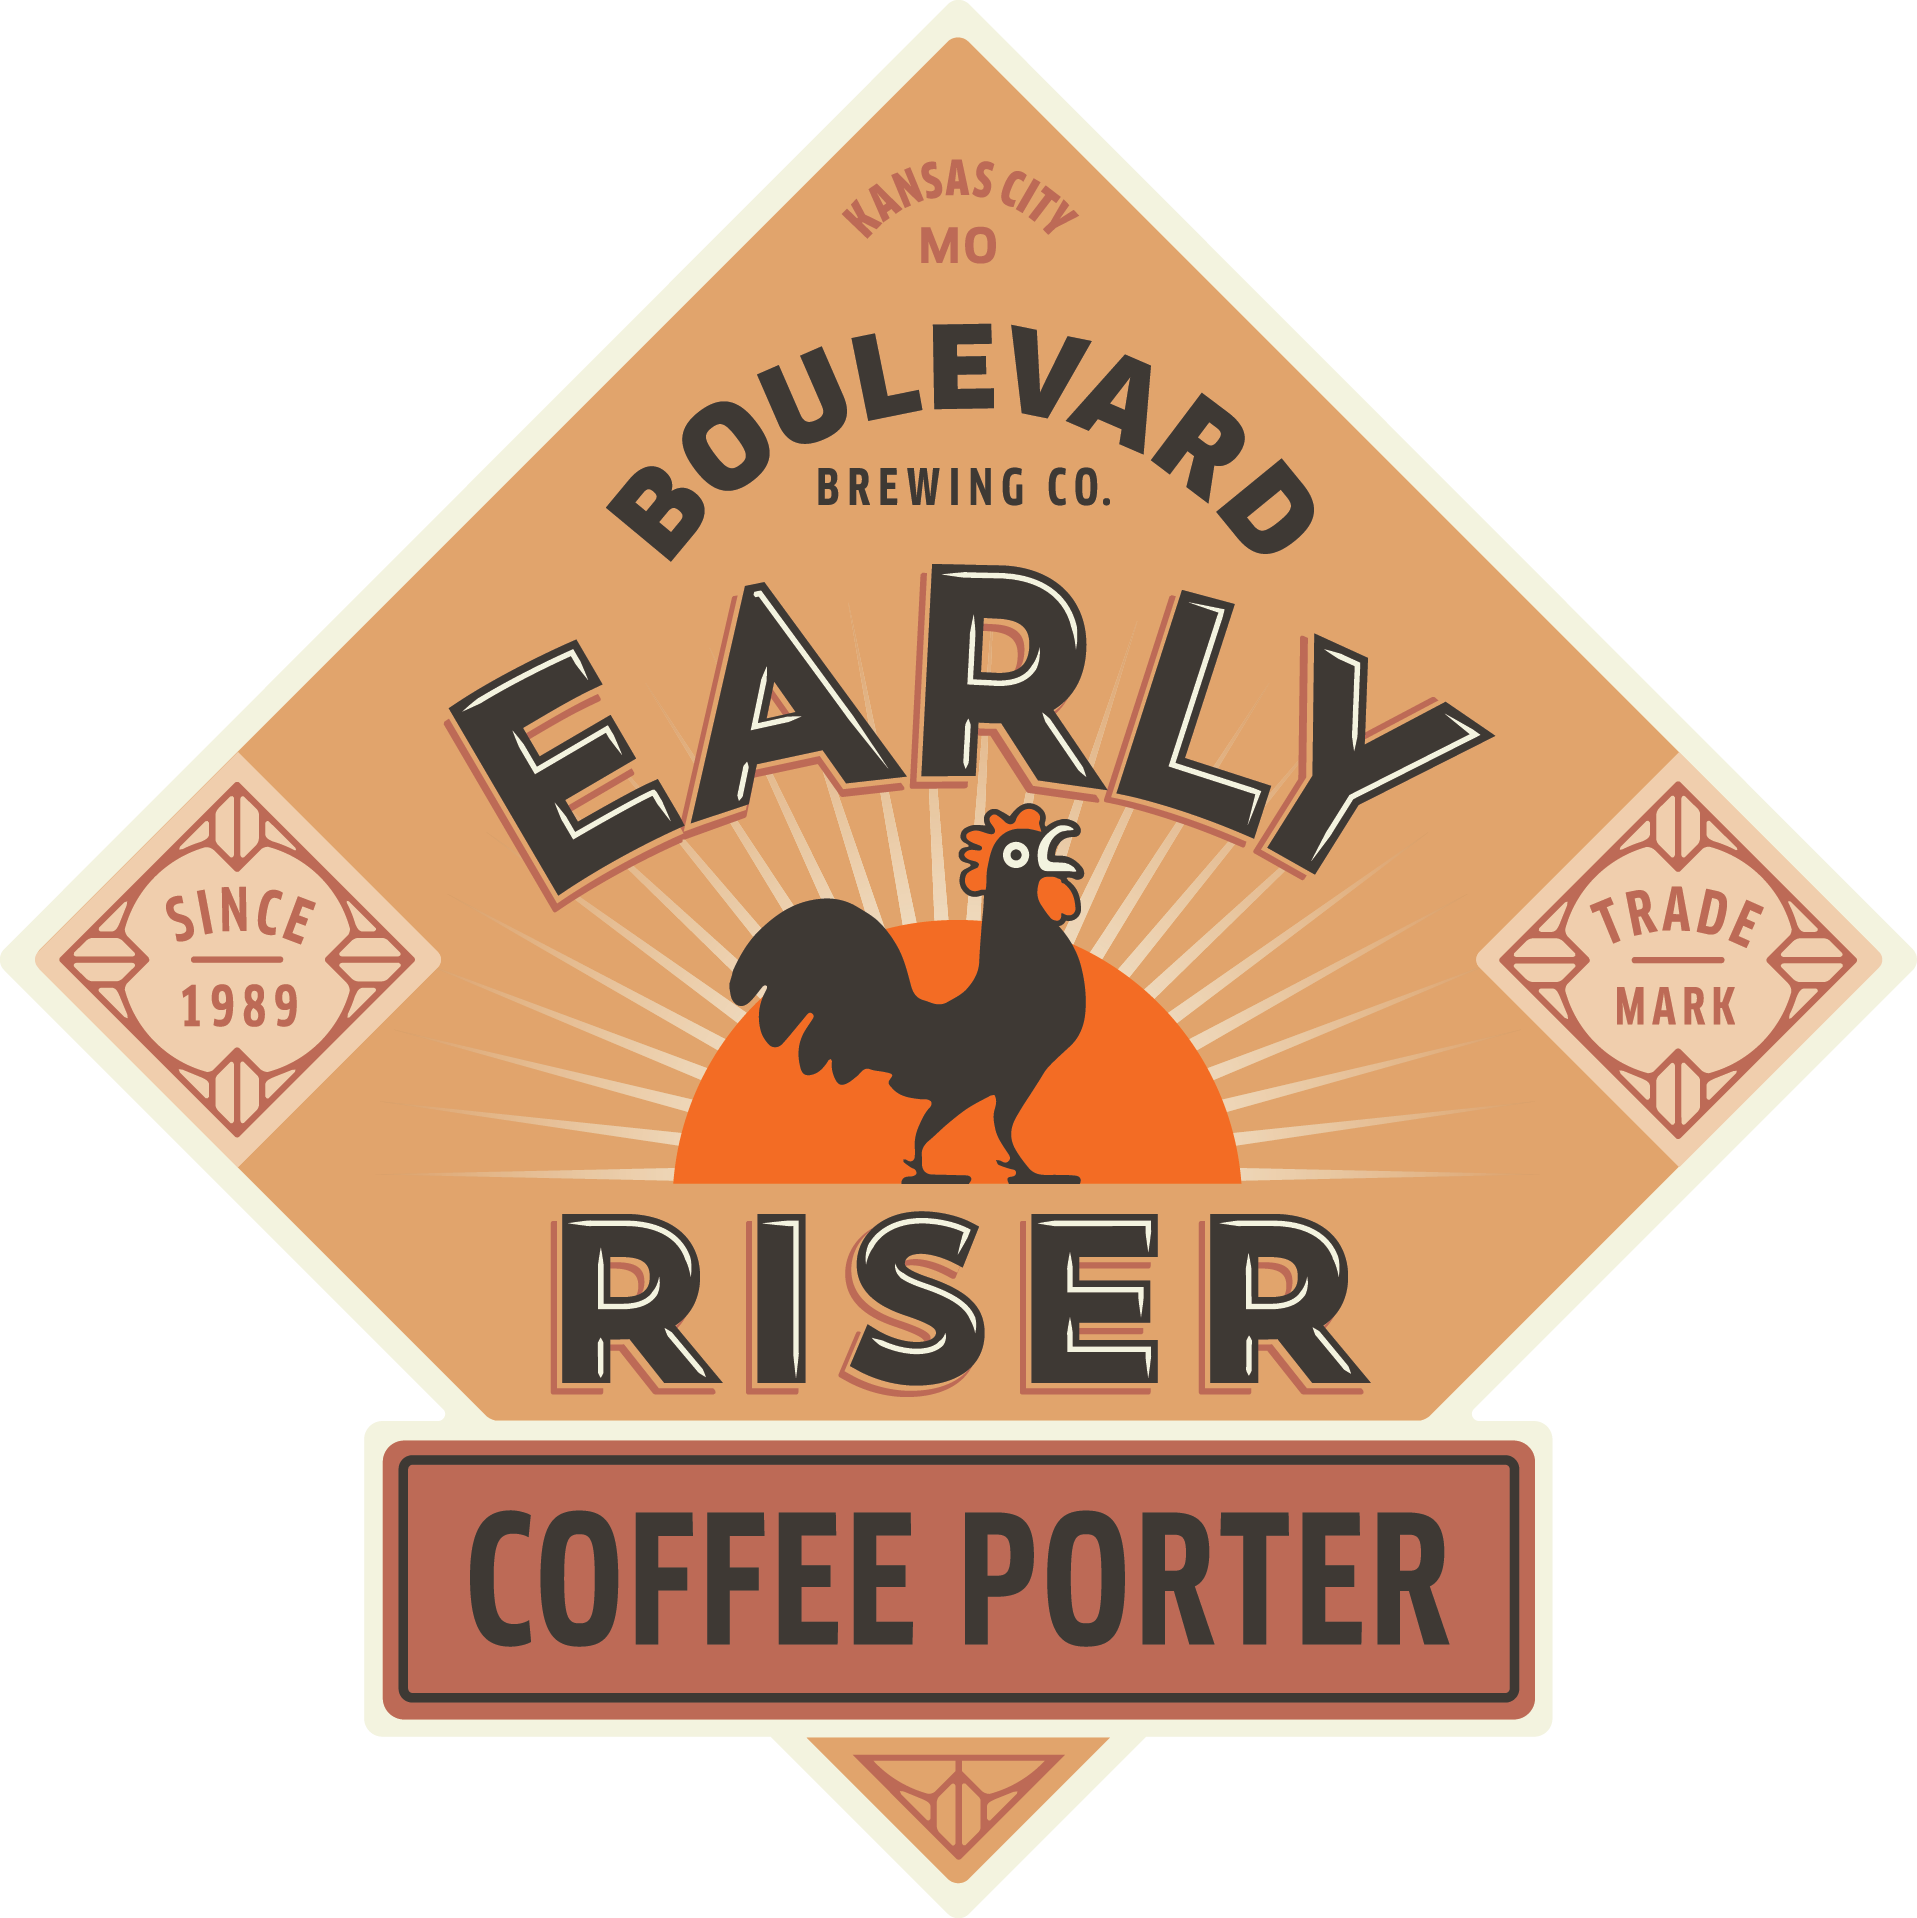 Early Riser Coffee Porter